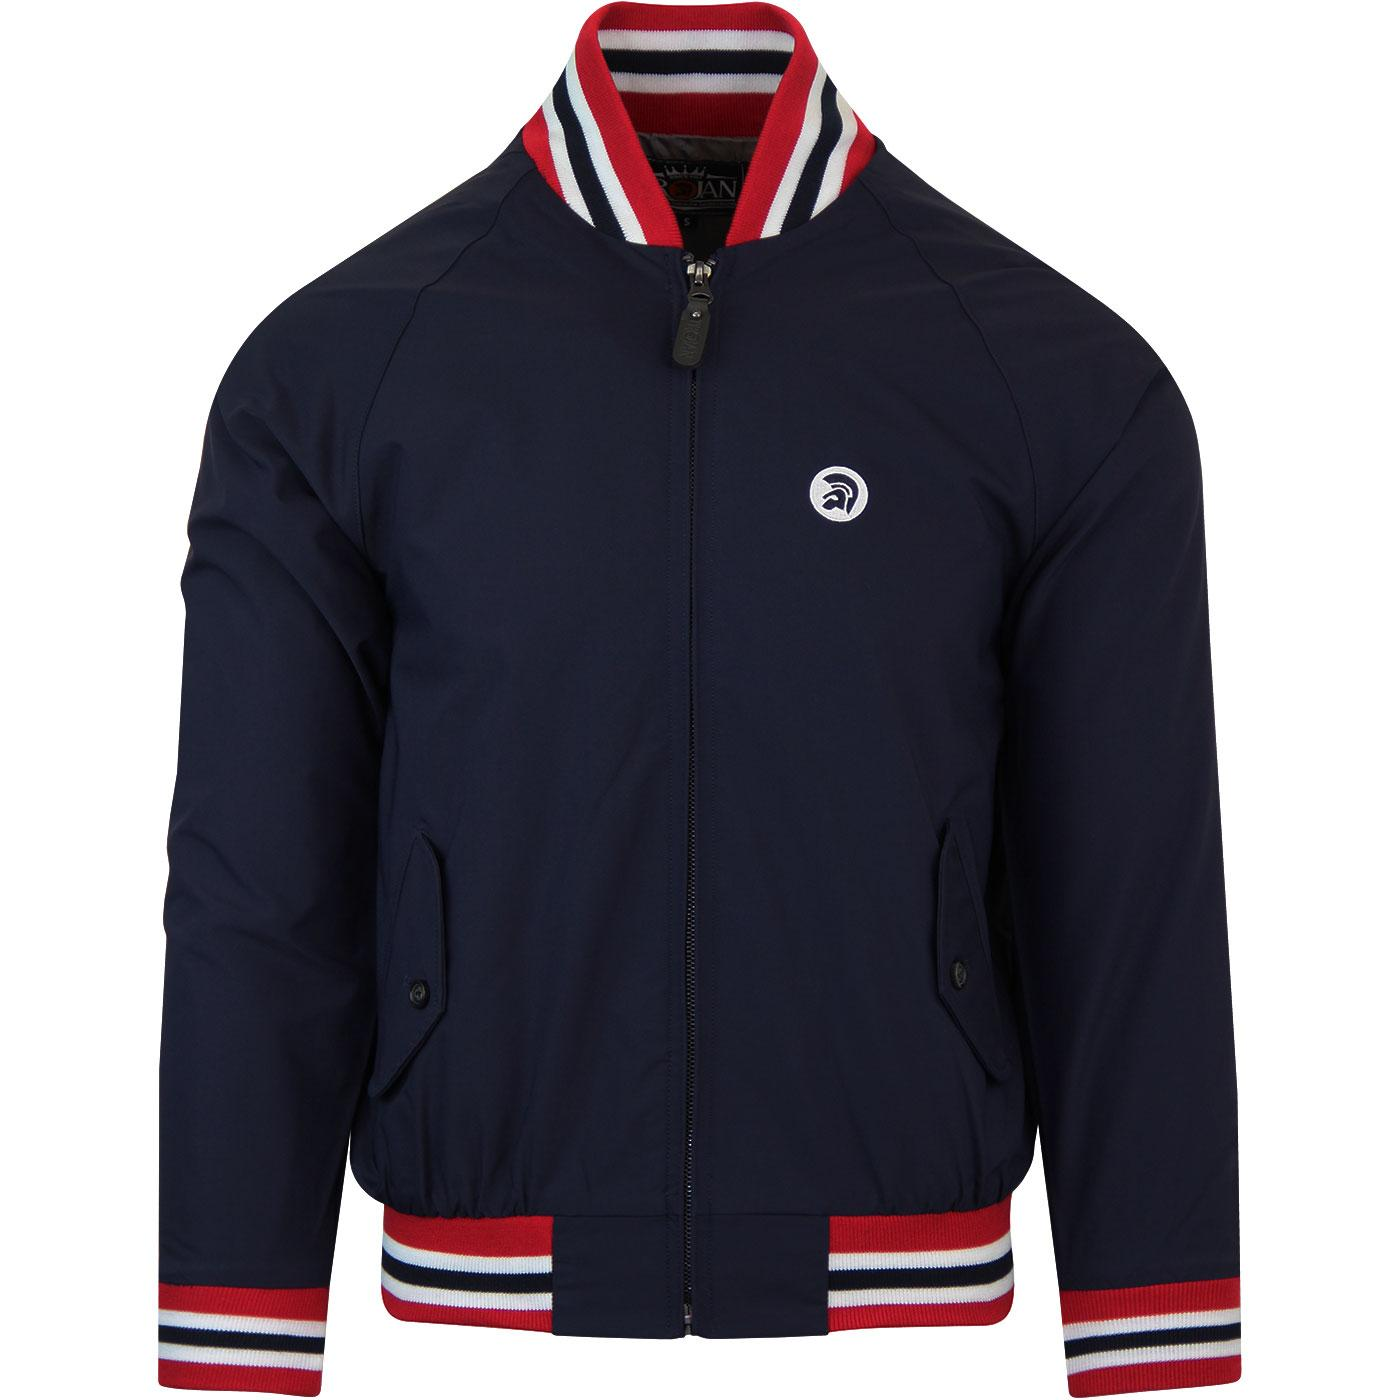 TROJAN RECORDS Men's Mod Monkey Jacket in Navy